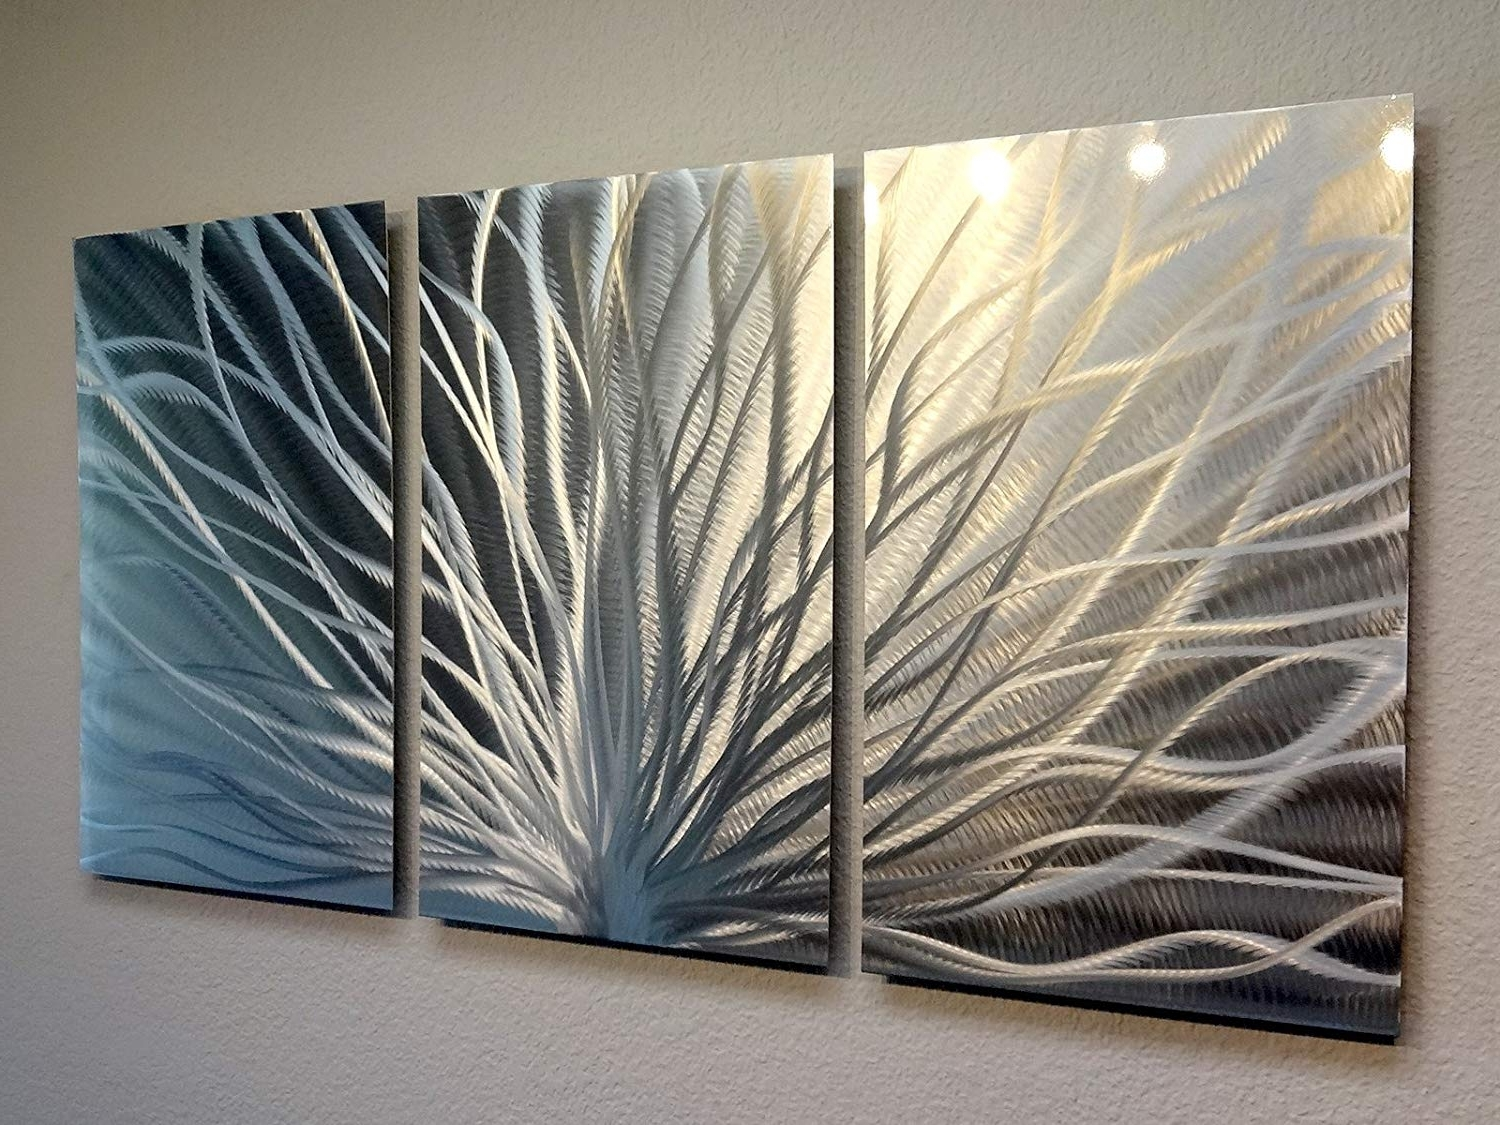 Amazon: Miles Shay Metal Wall Art, Modern Home Decor, Abstract Within Most Current Abstract Wall Art (View 5 of 15)